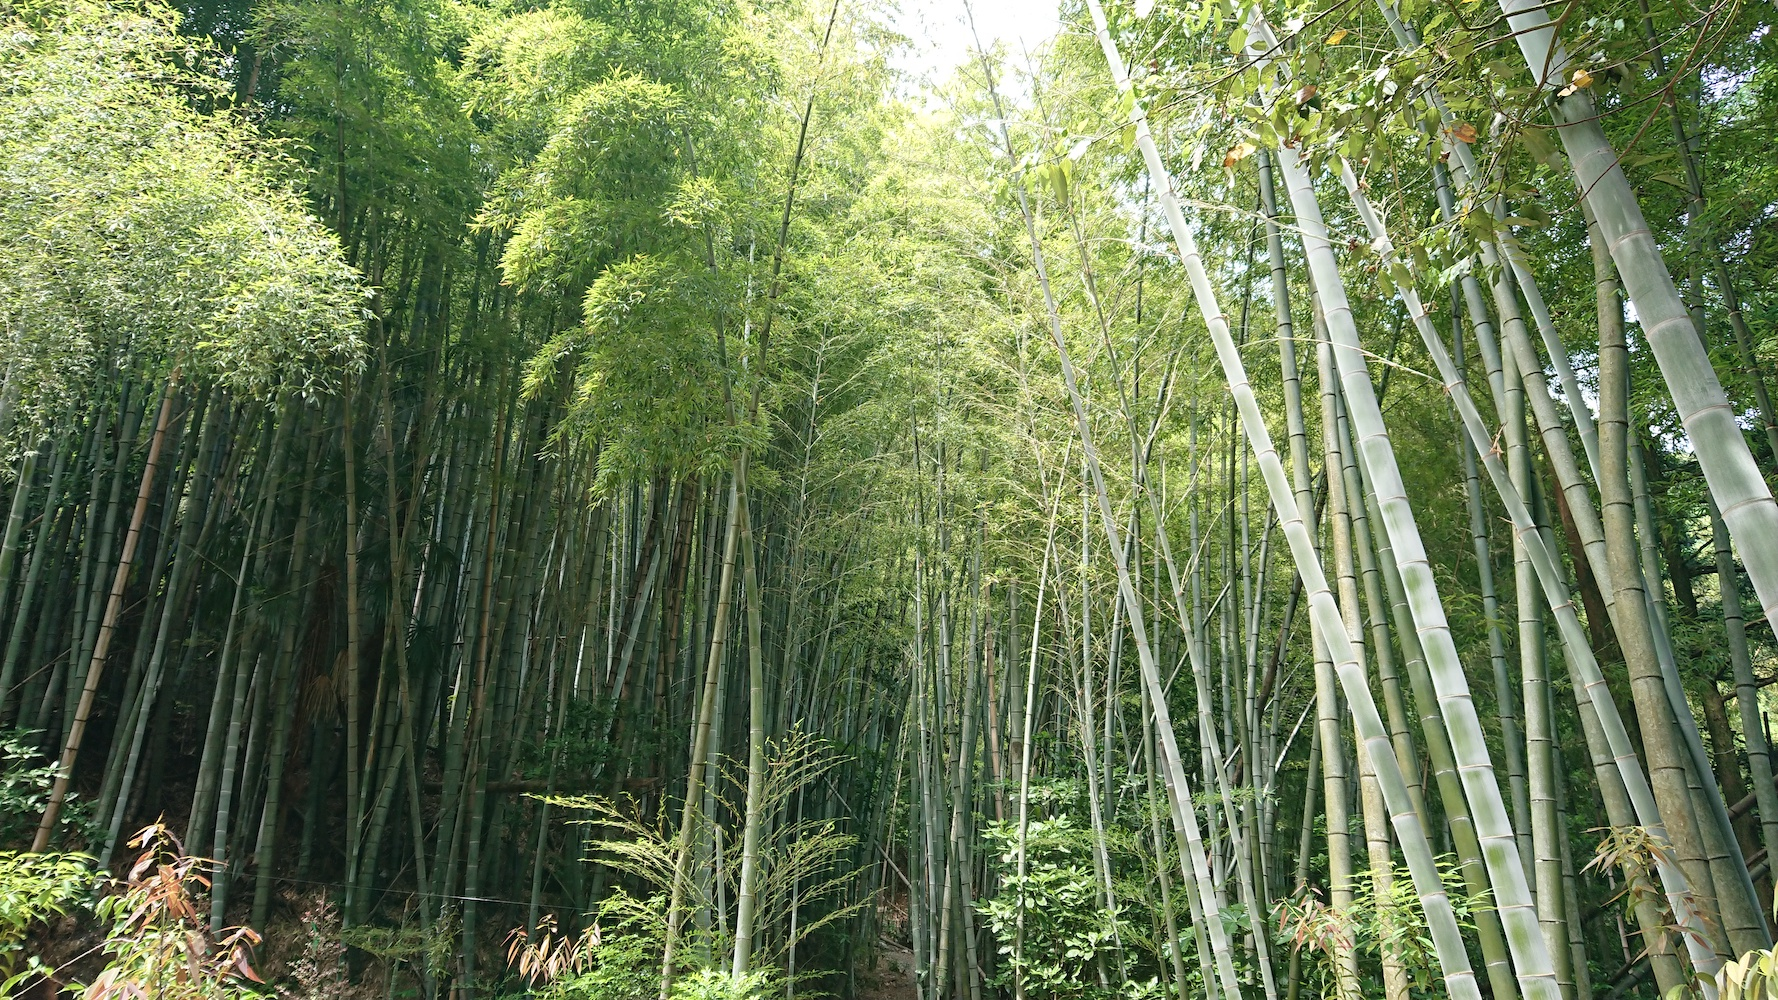 Beppu Hot Springs Bamboo Forest